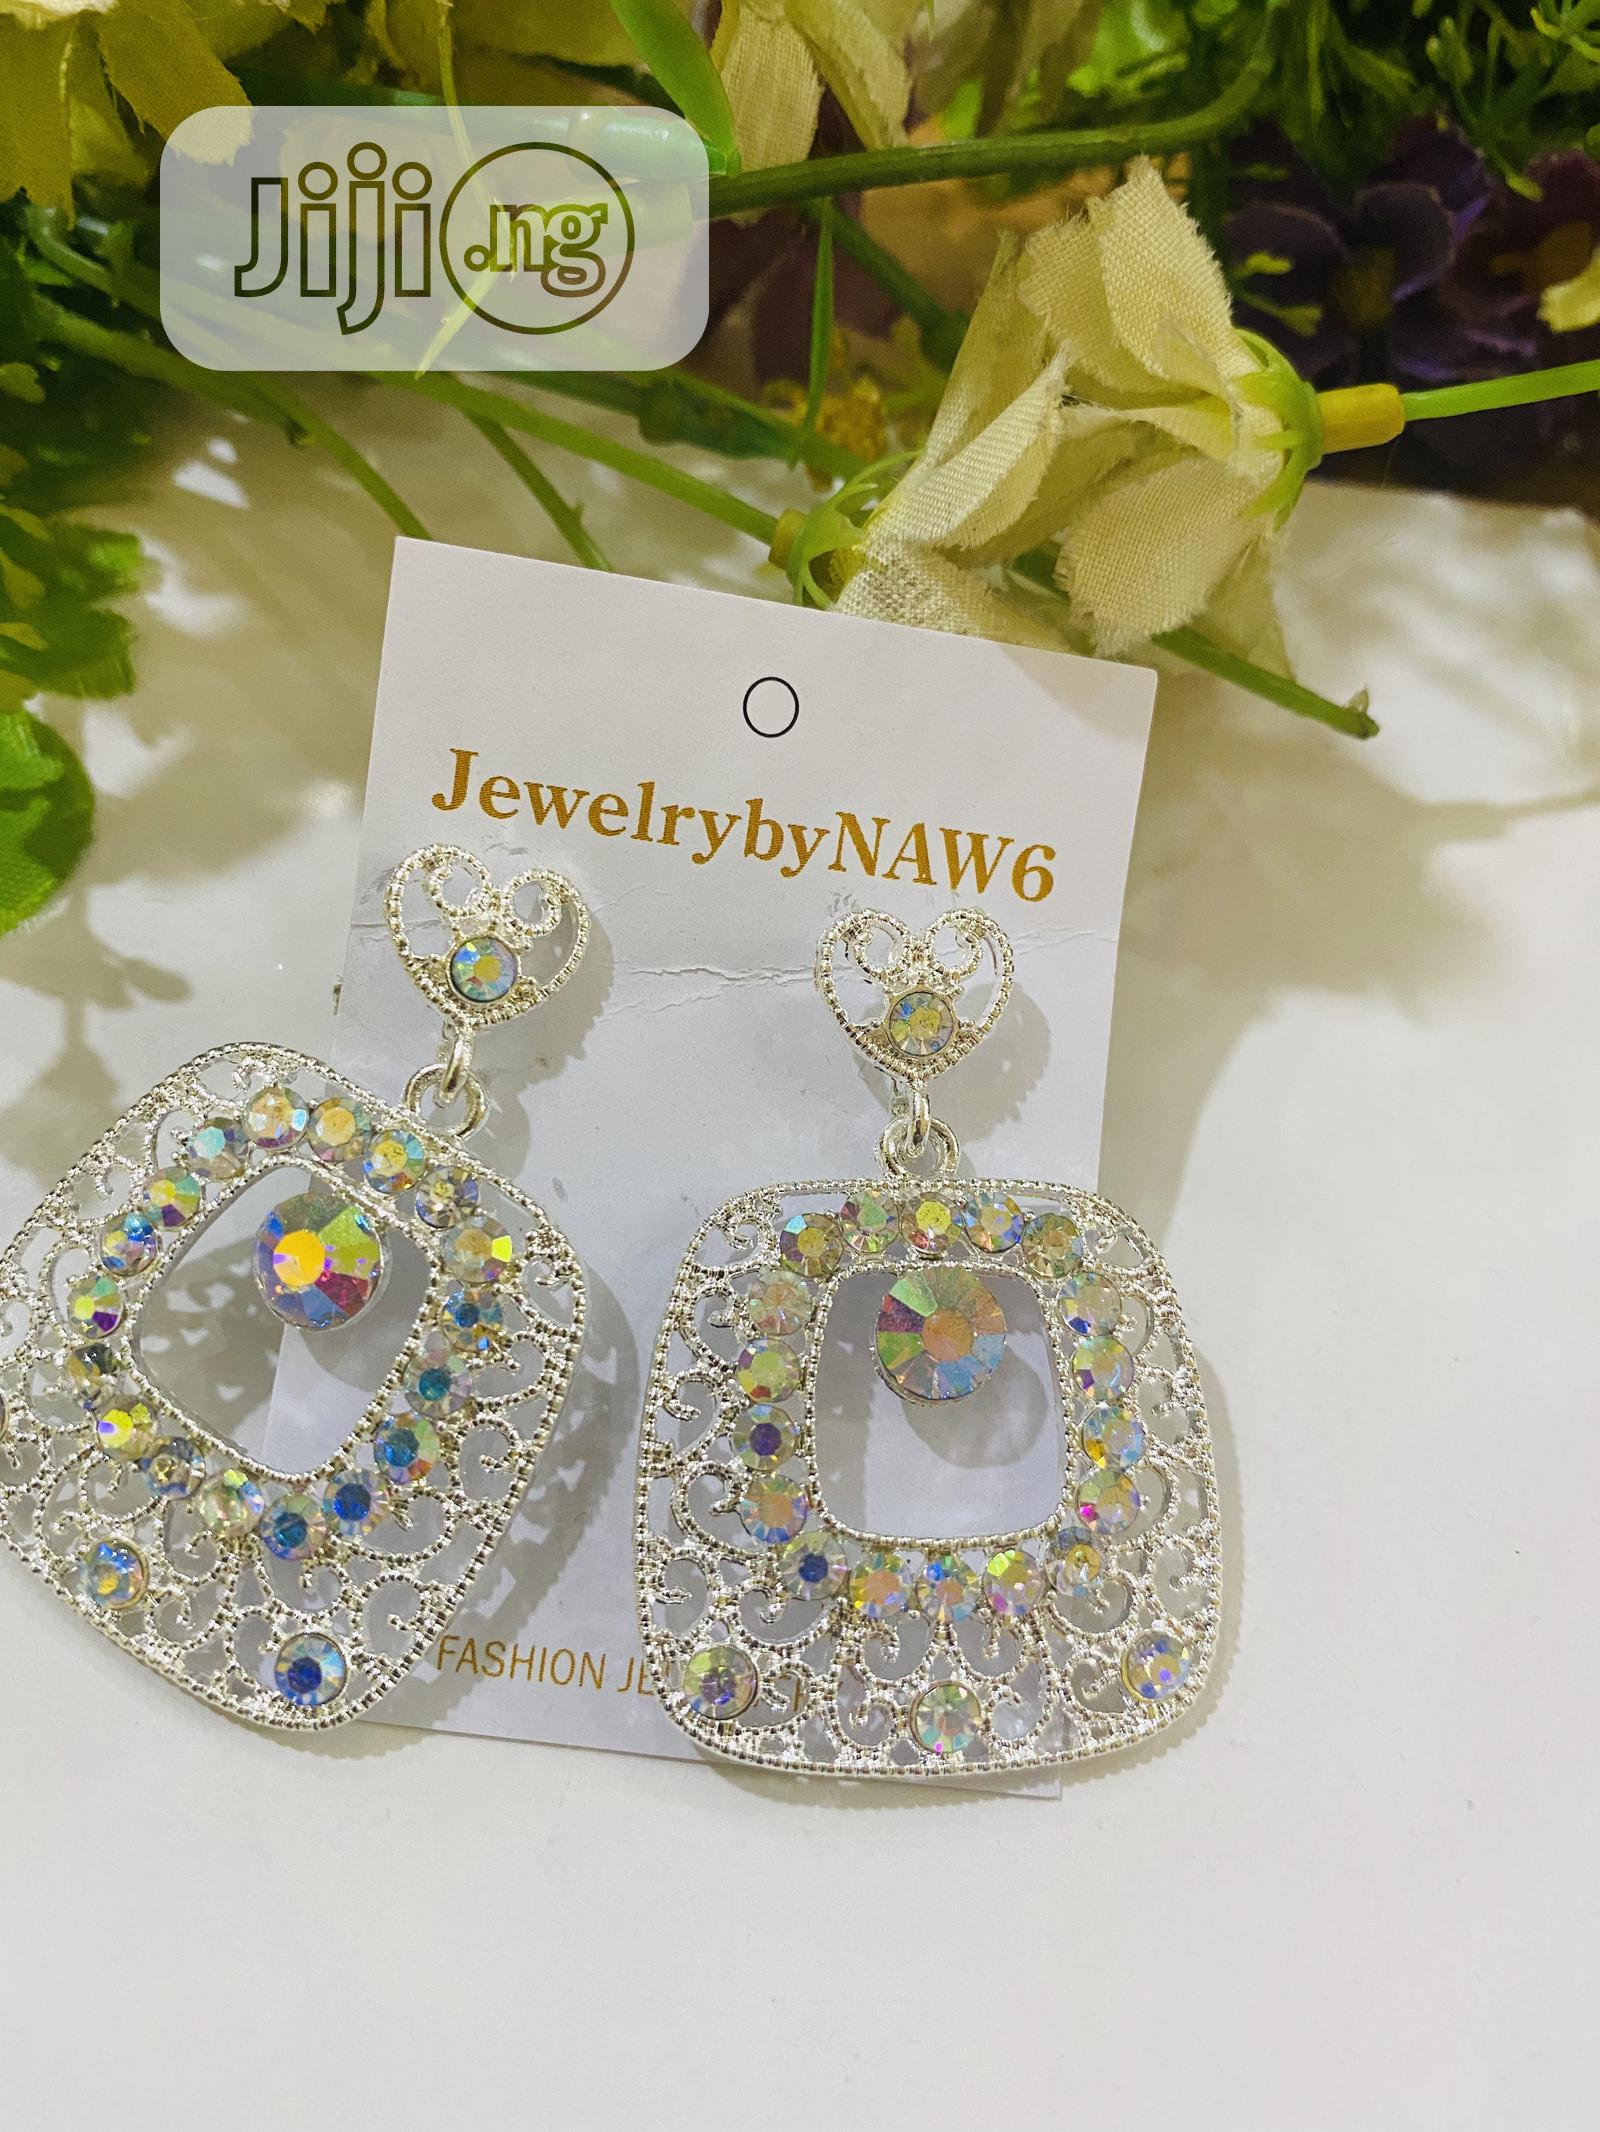 Statement Fashion Earrings | Jewelry for sale in Calabar, Cross River State, Nigeria